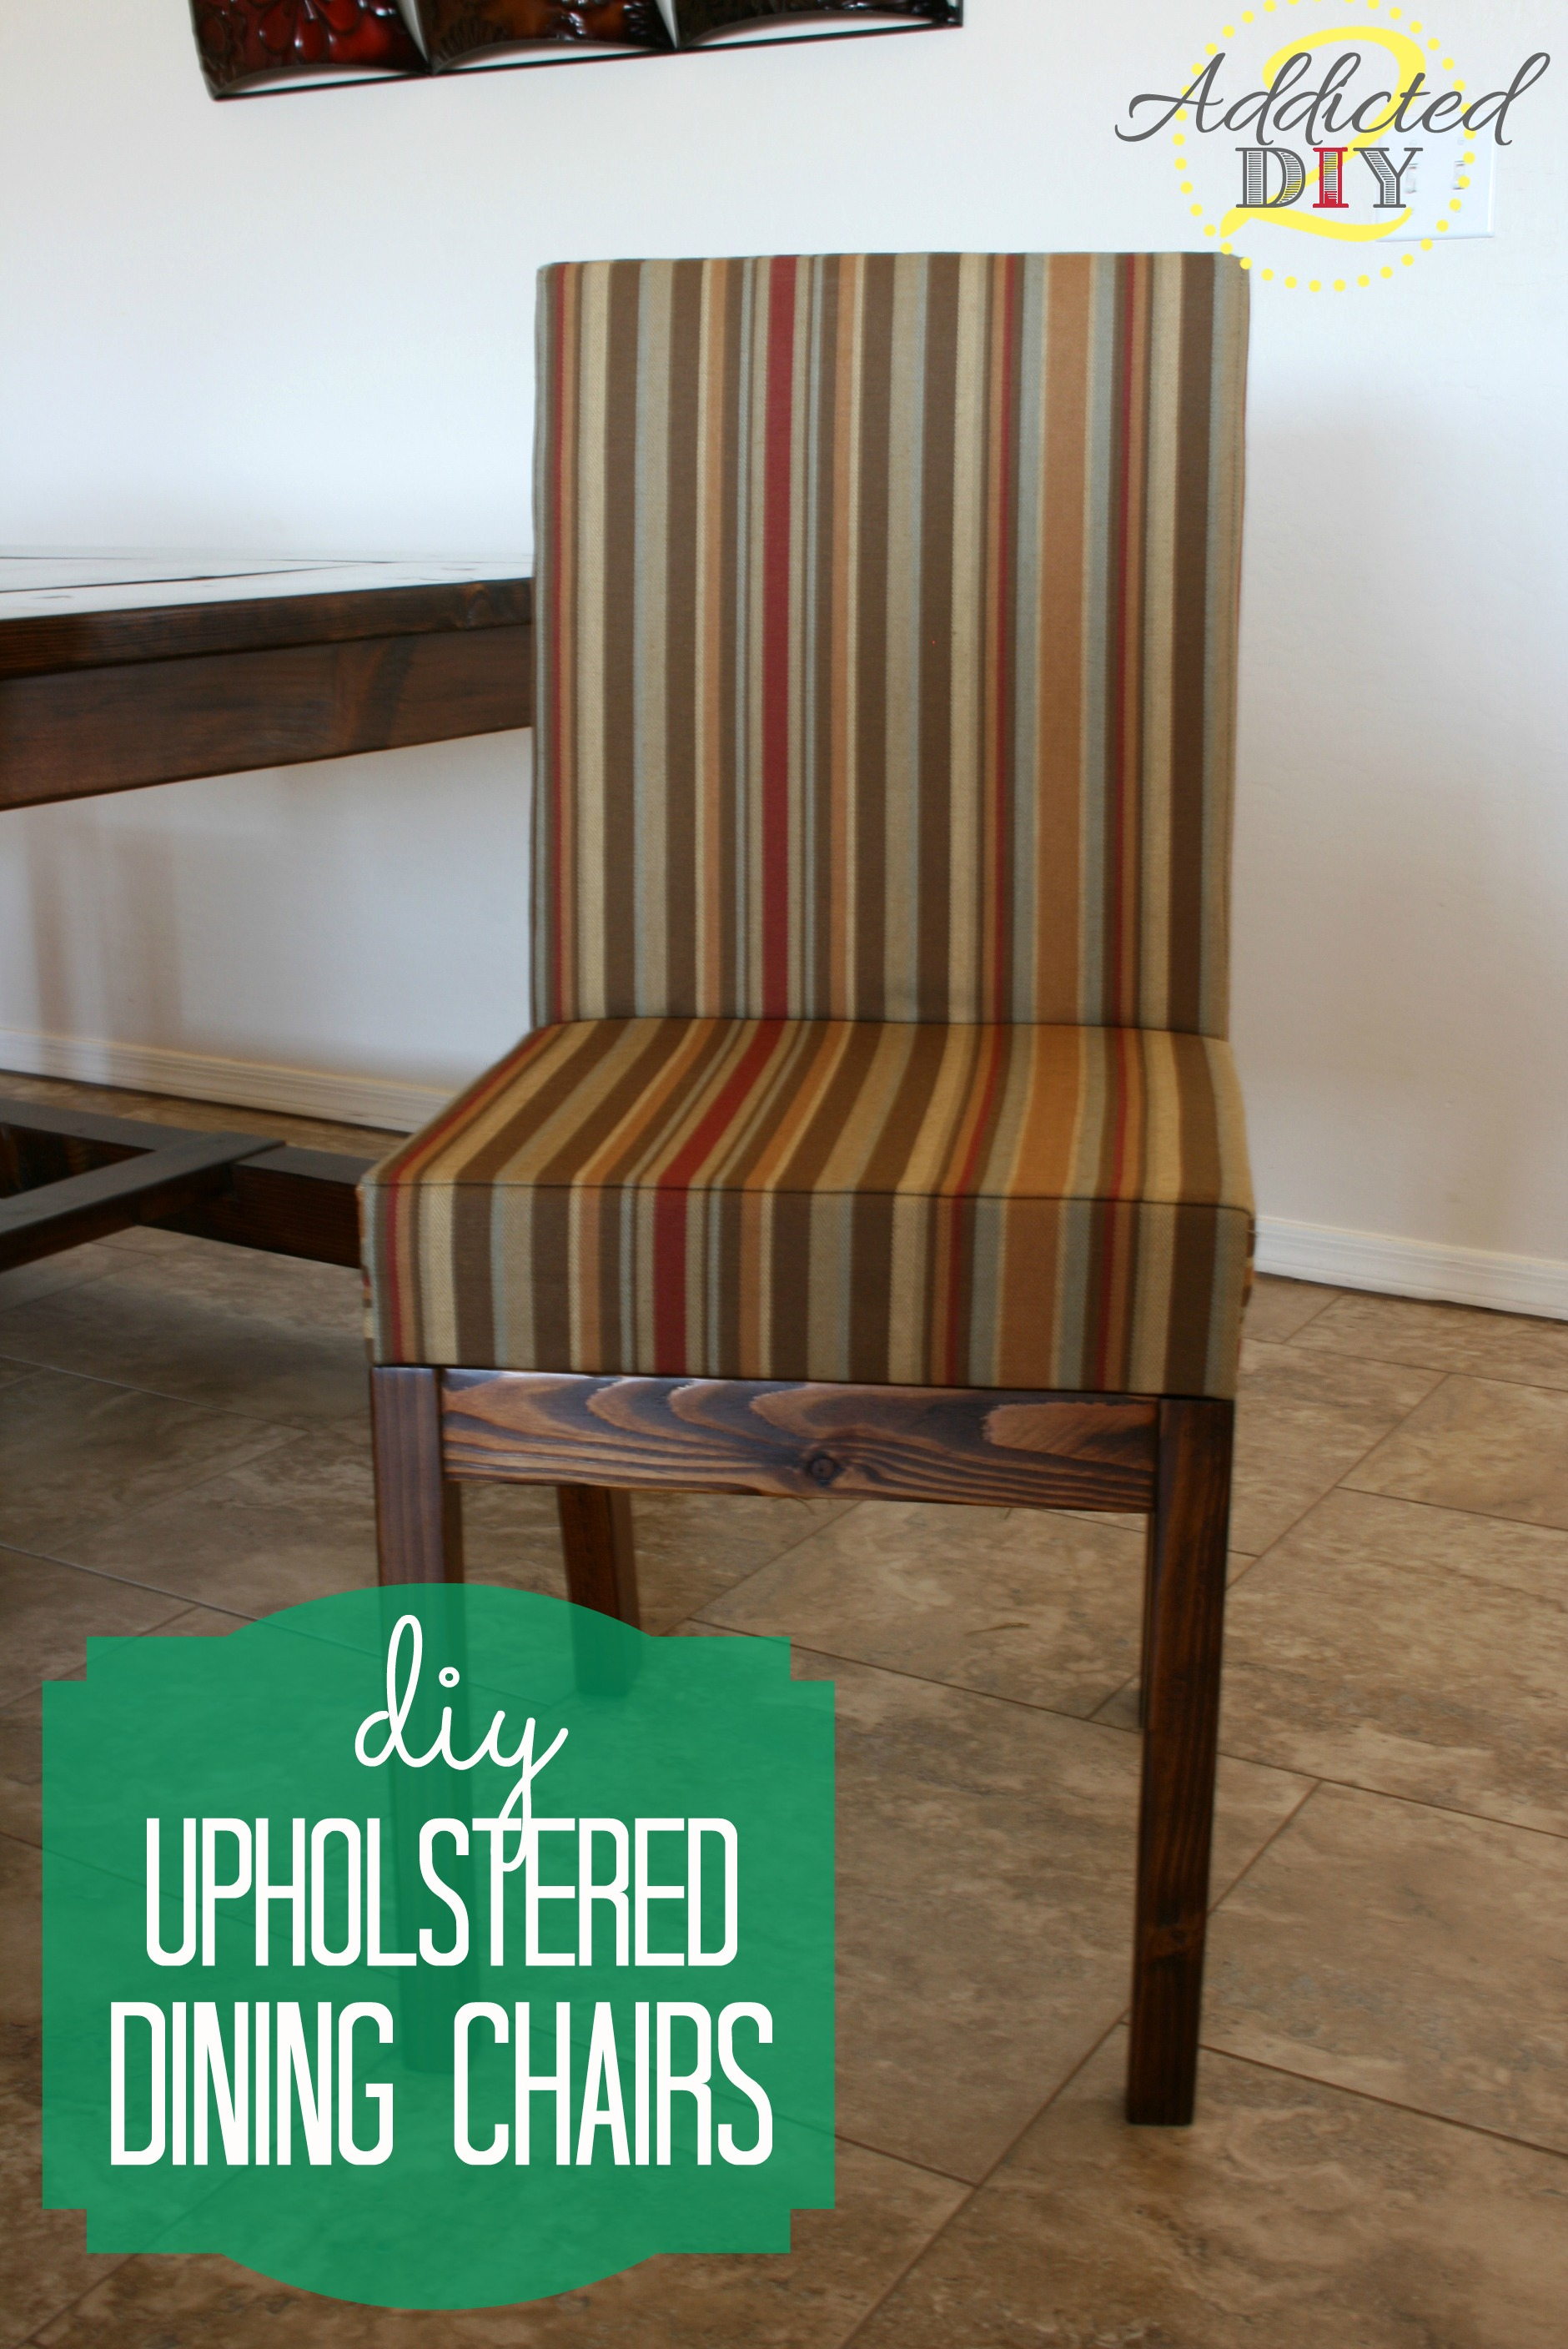 diy upholstered dining chairs photo - 2